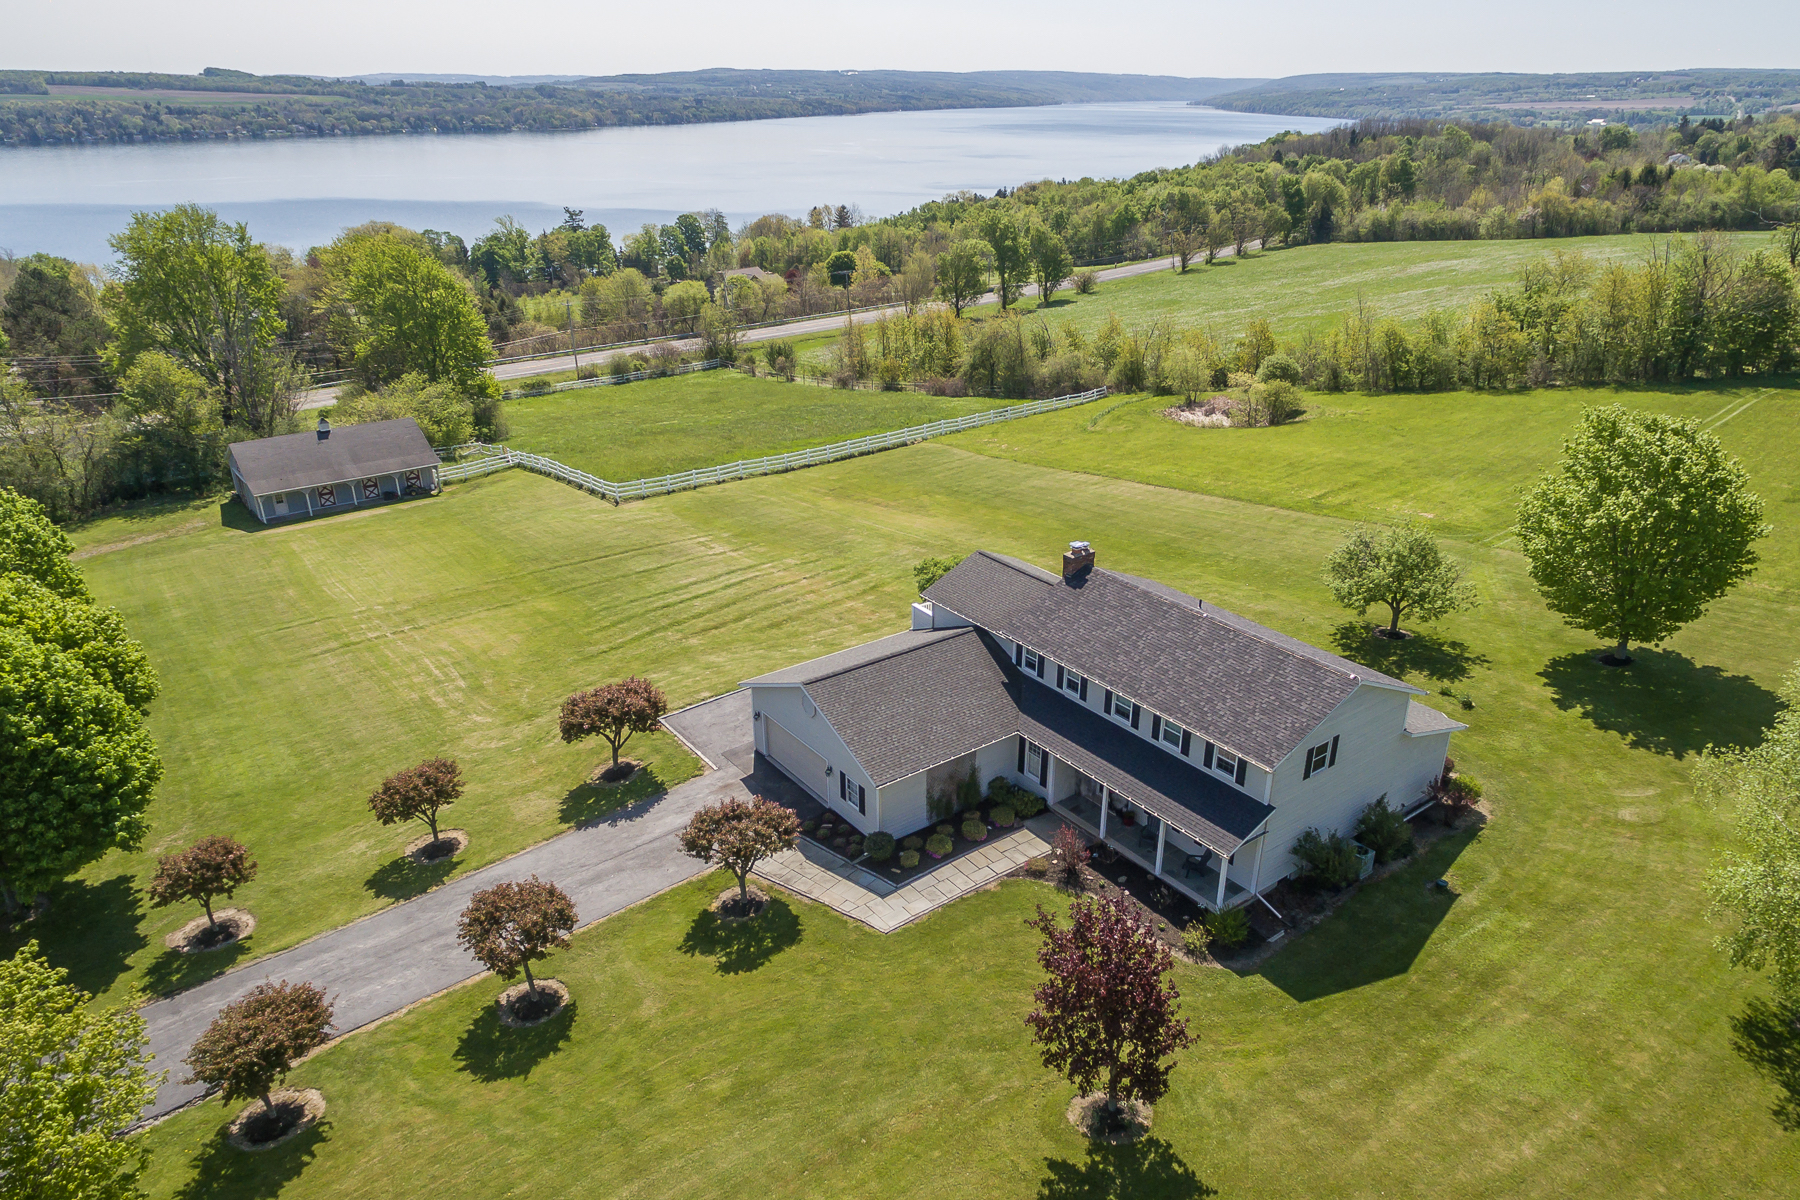 Single Family Home for Sale at Skaneateles Lake Views on 5.5 Acres 1300 Hencoop Rd Skaneateles, 13152 United States